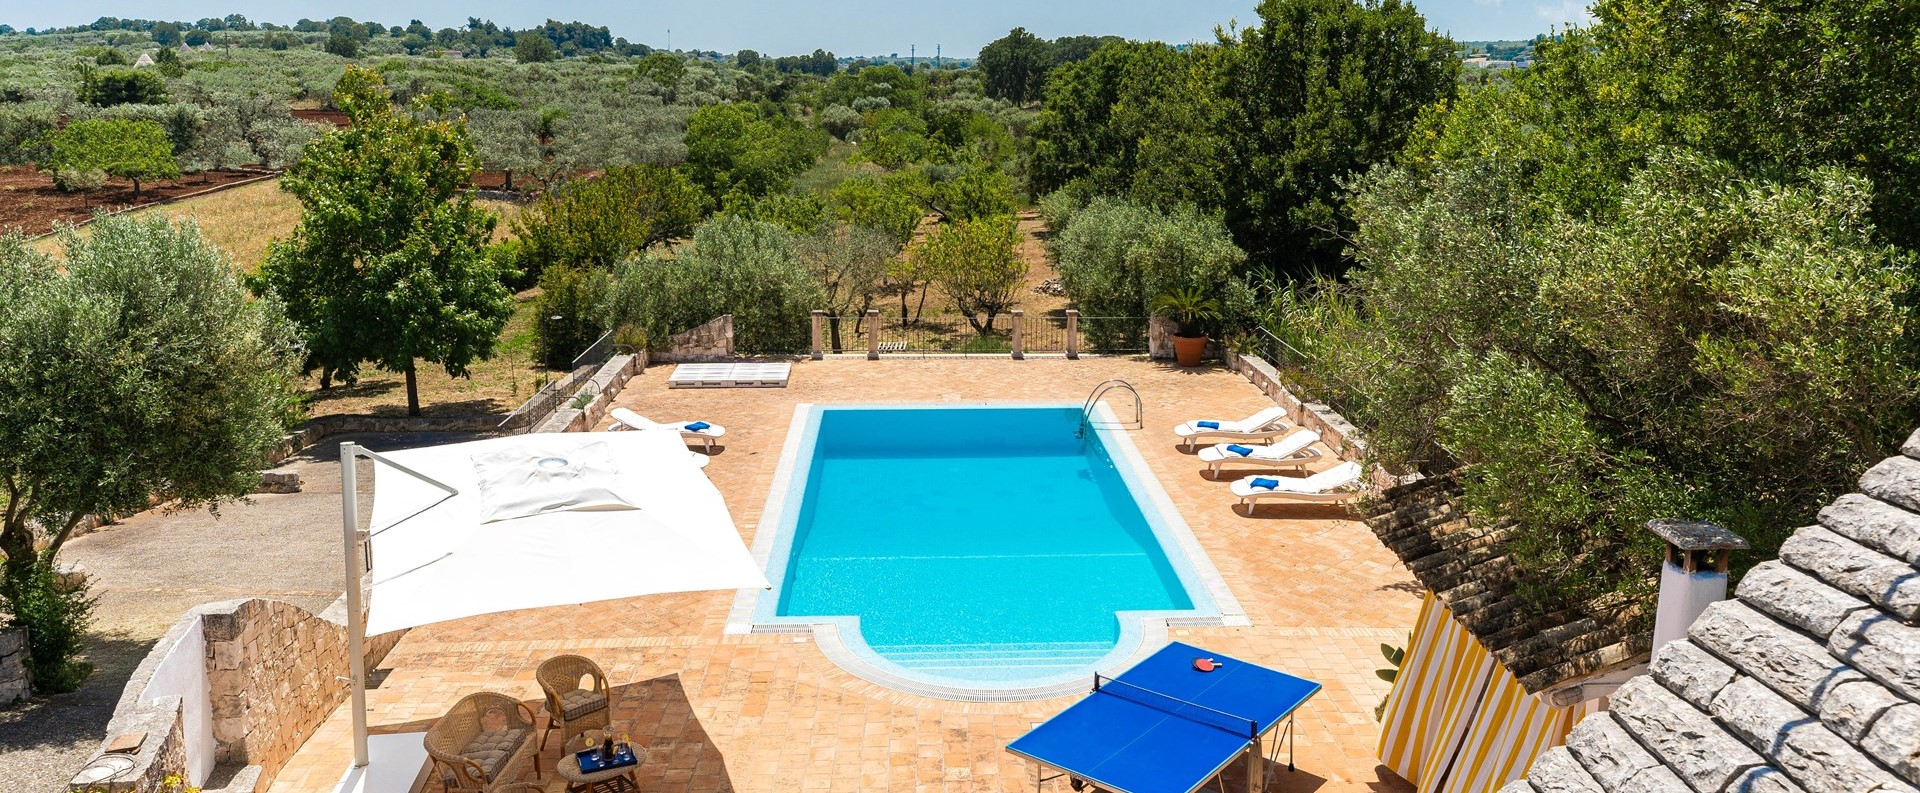 trulli-volpe-swimming-pool-aerial